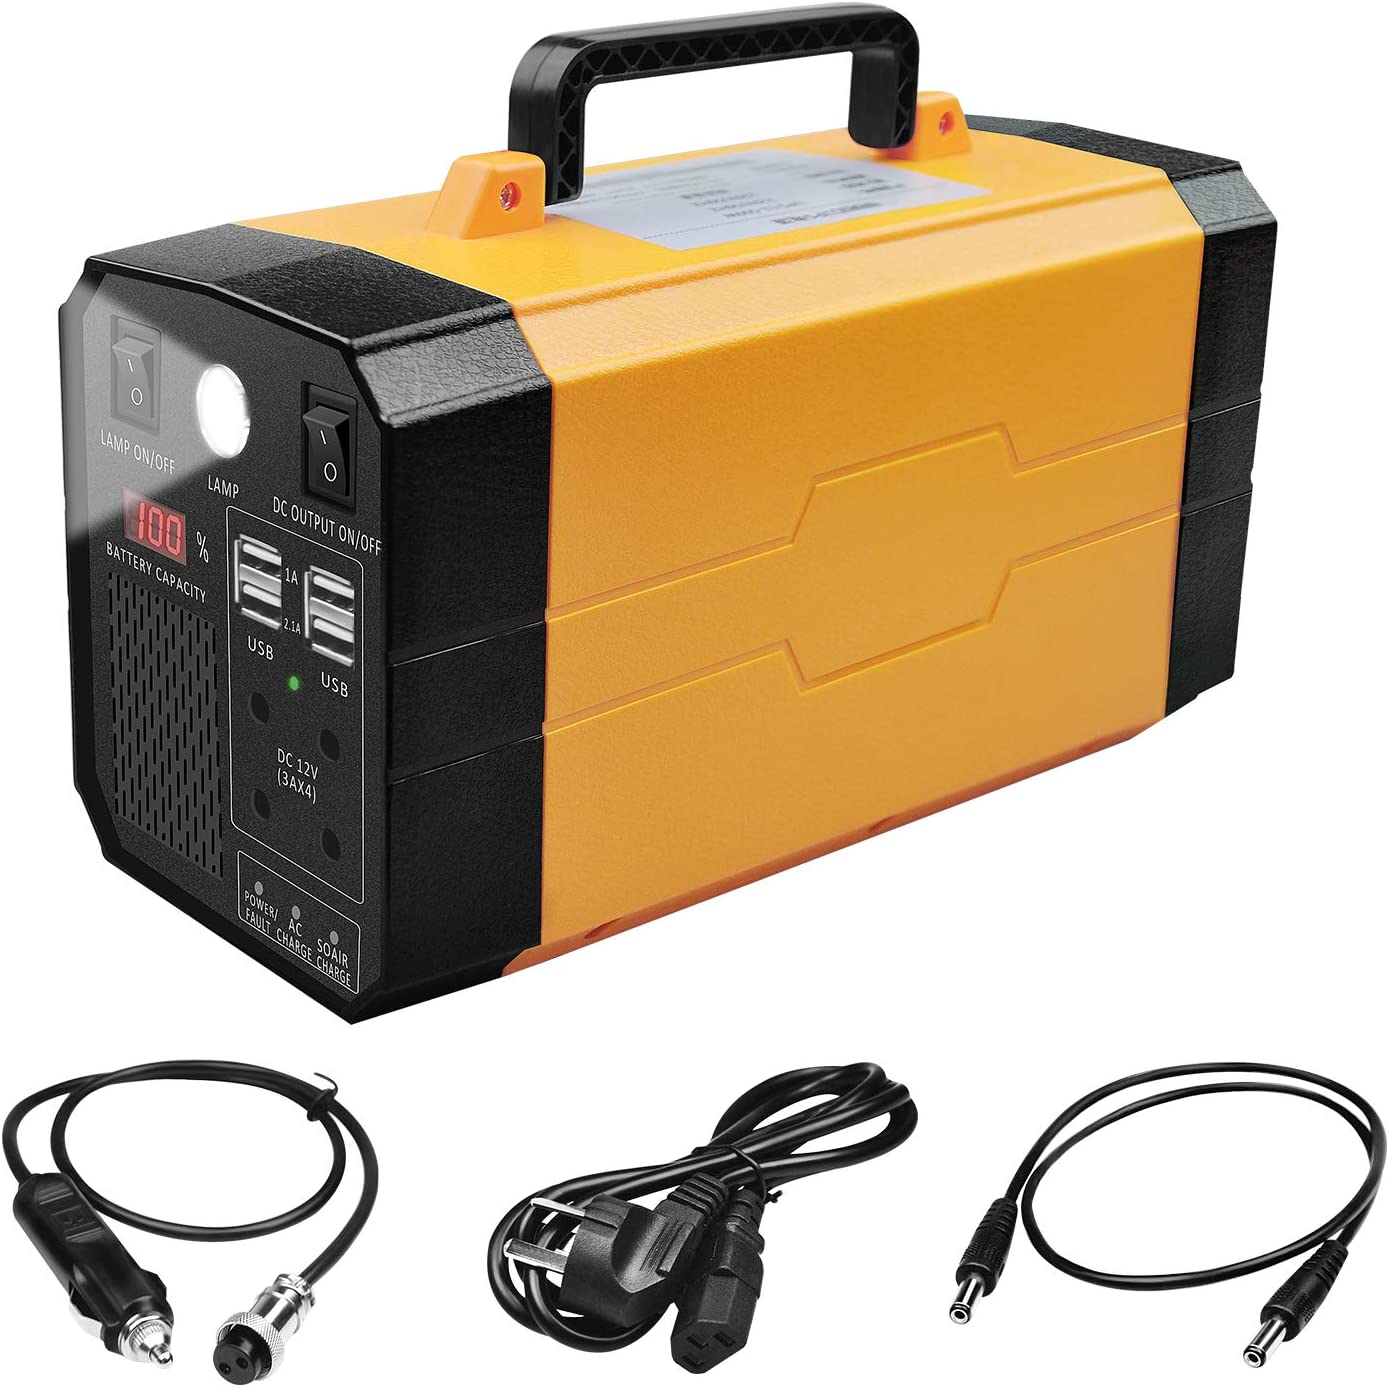 Portable Rechargeable Generator 500W 288WH UPS Battery Backup, Power Source with AC Inverter, USB, DC 12V Outputs for Outdoors Laptop Home Camping, Charged by Solar/AC Outlet/Car